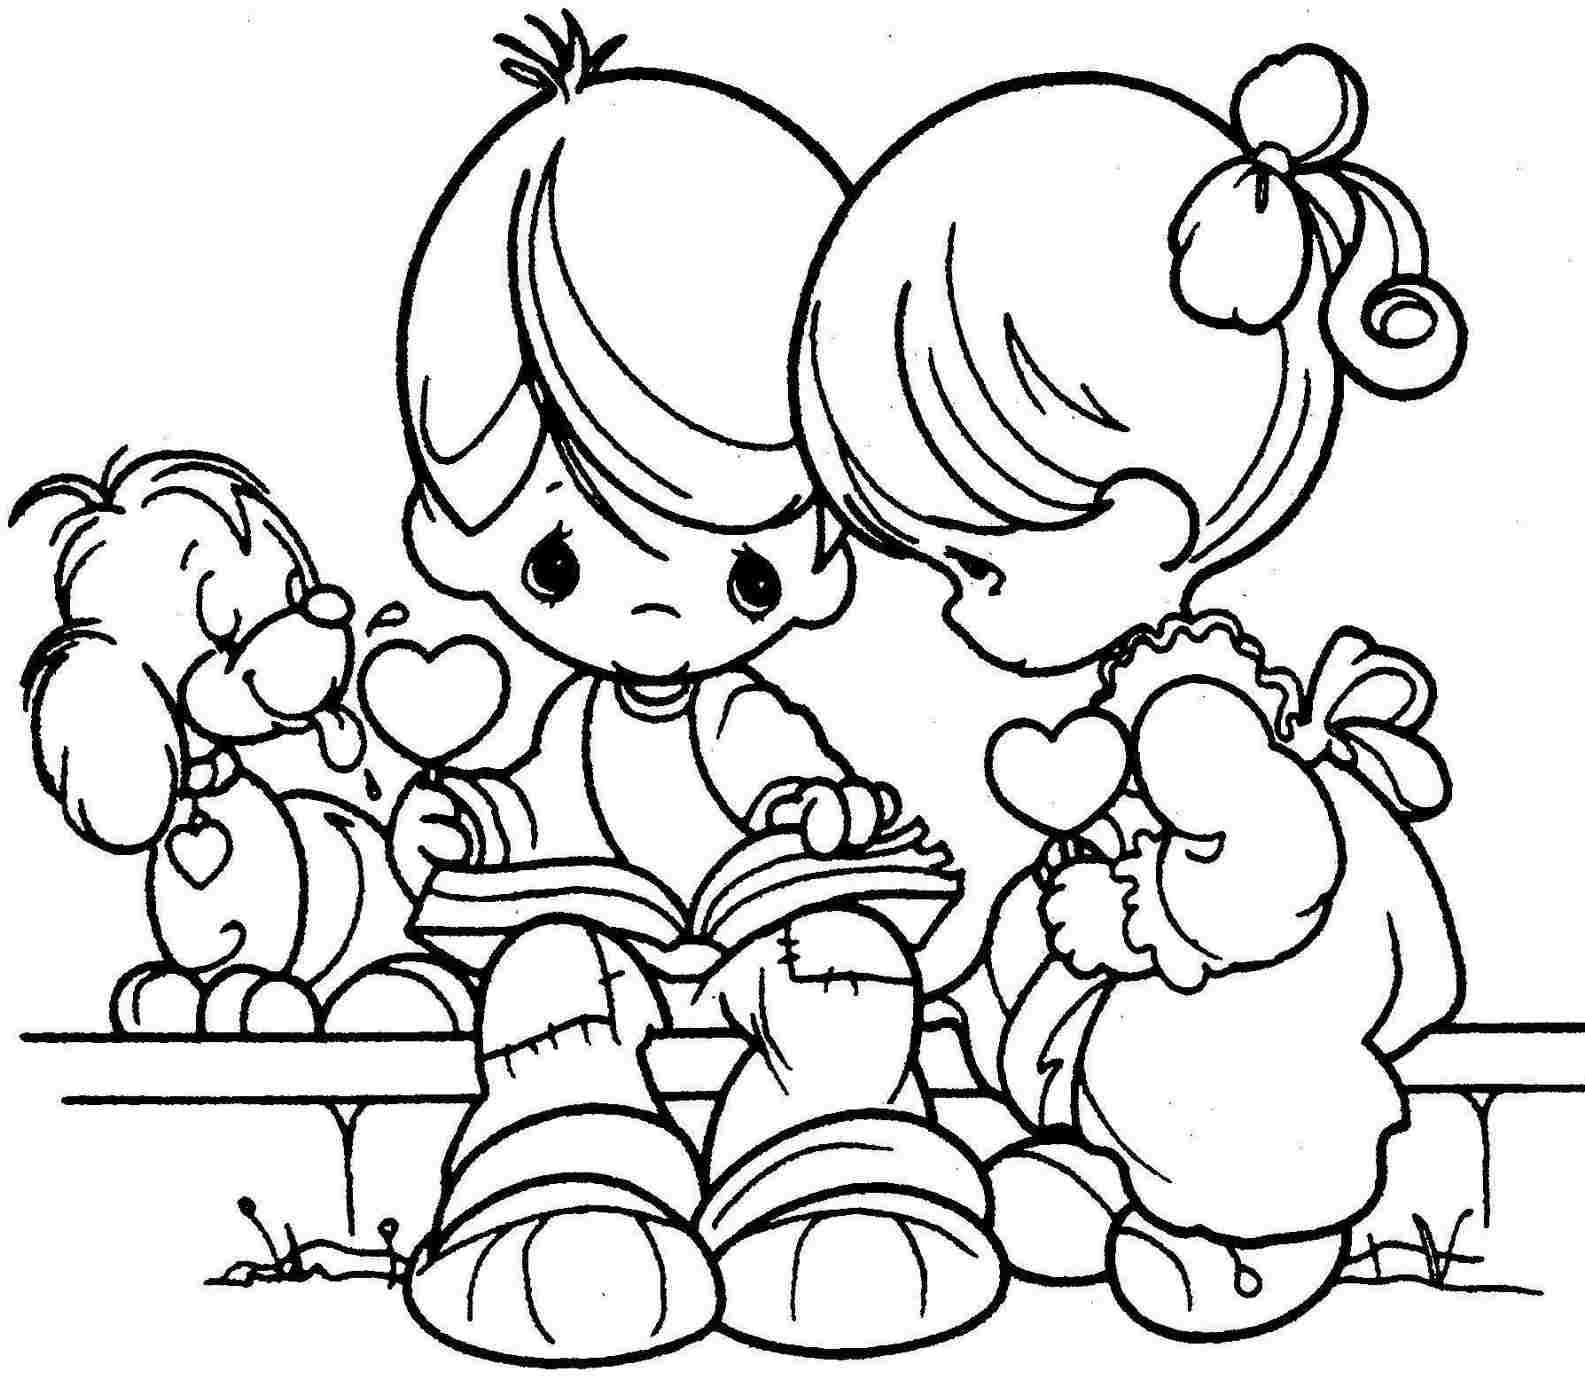 Paw patrol coloring pages valentines - Printable Valentine Coloring Pages Coloring Me